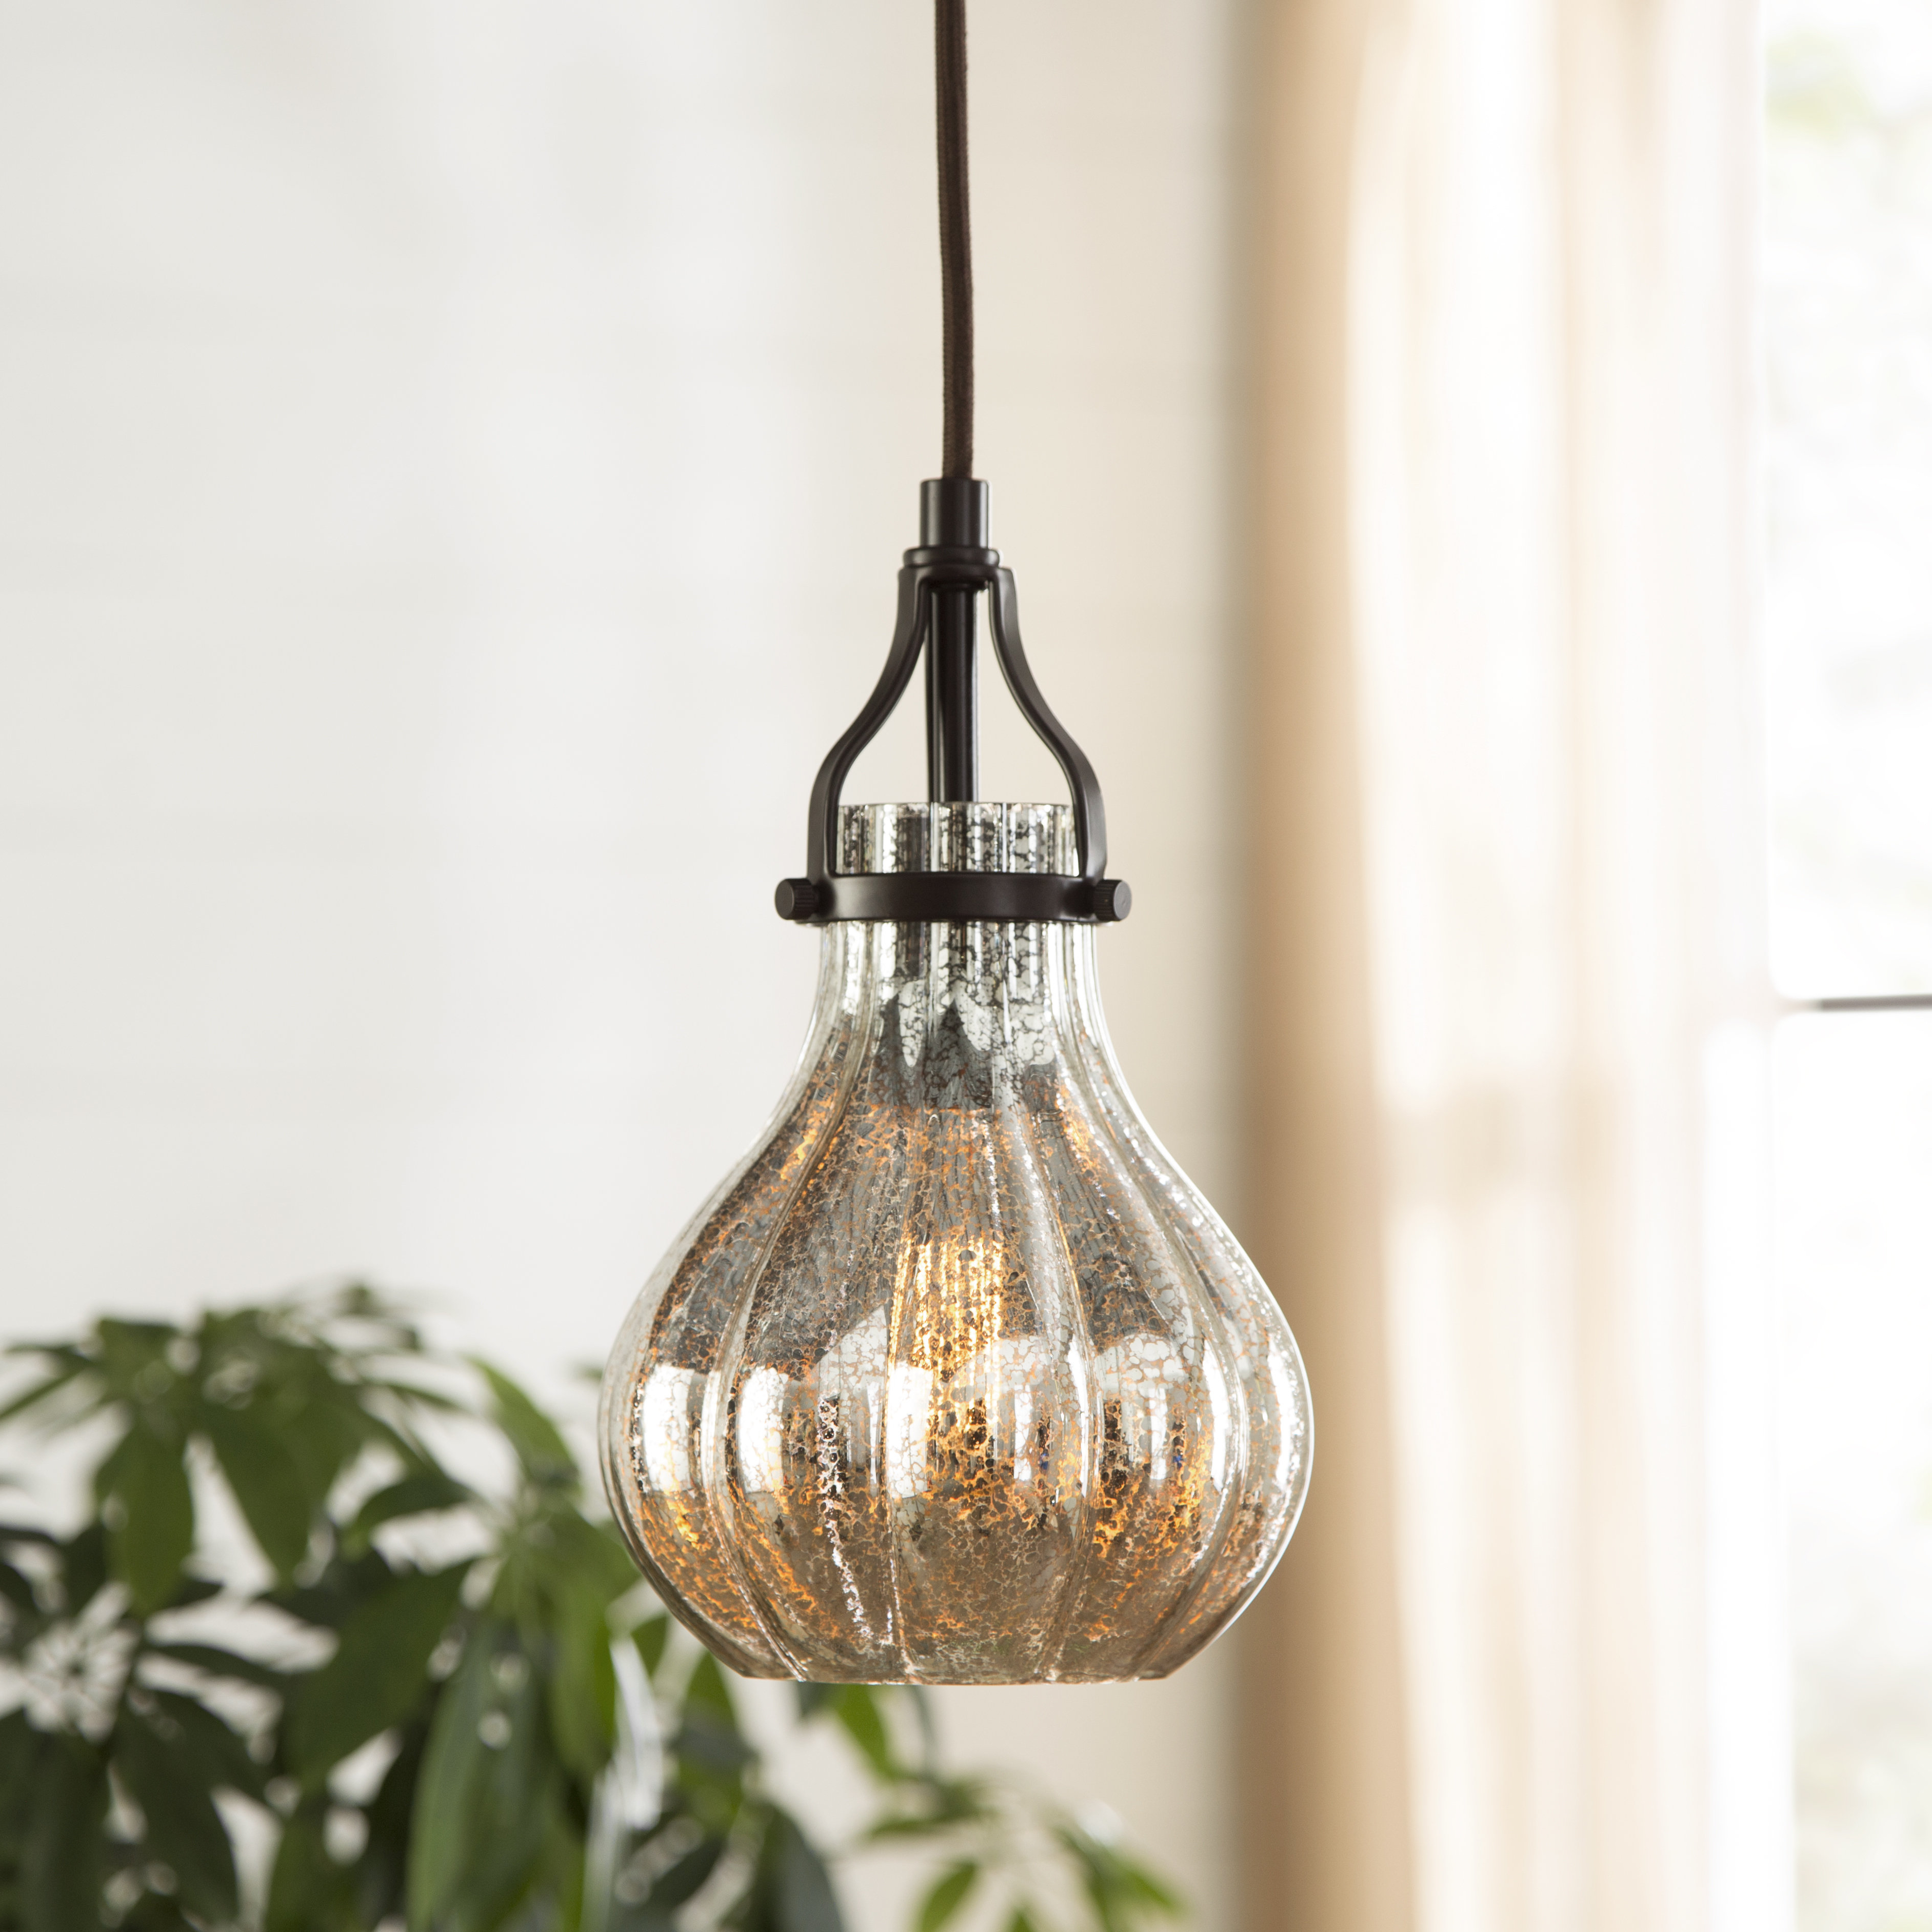 Orofino 1 Light Single Teardrop Pendant Intended For Well Liked Abordale 1 Light Single Dome Pendants (View 18 of 25)